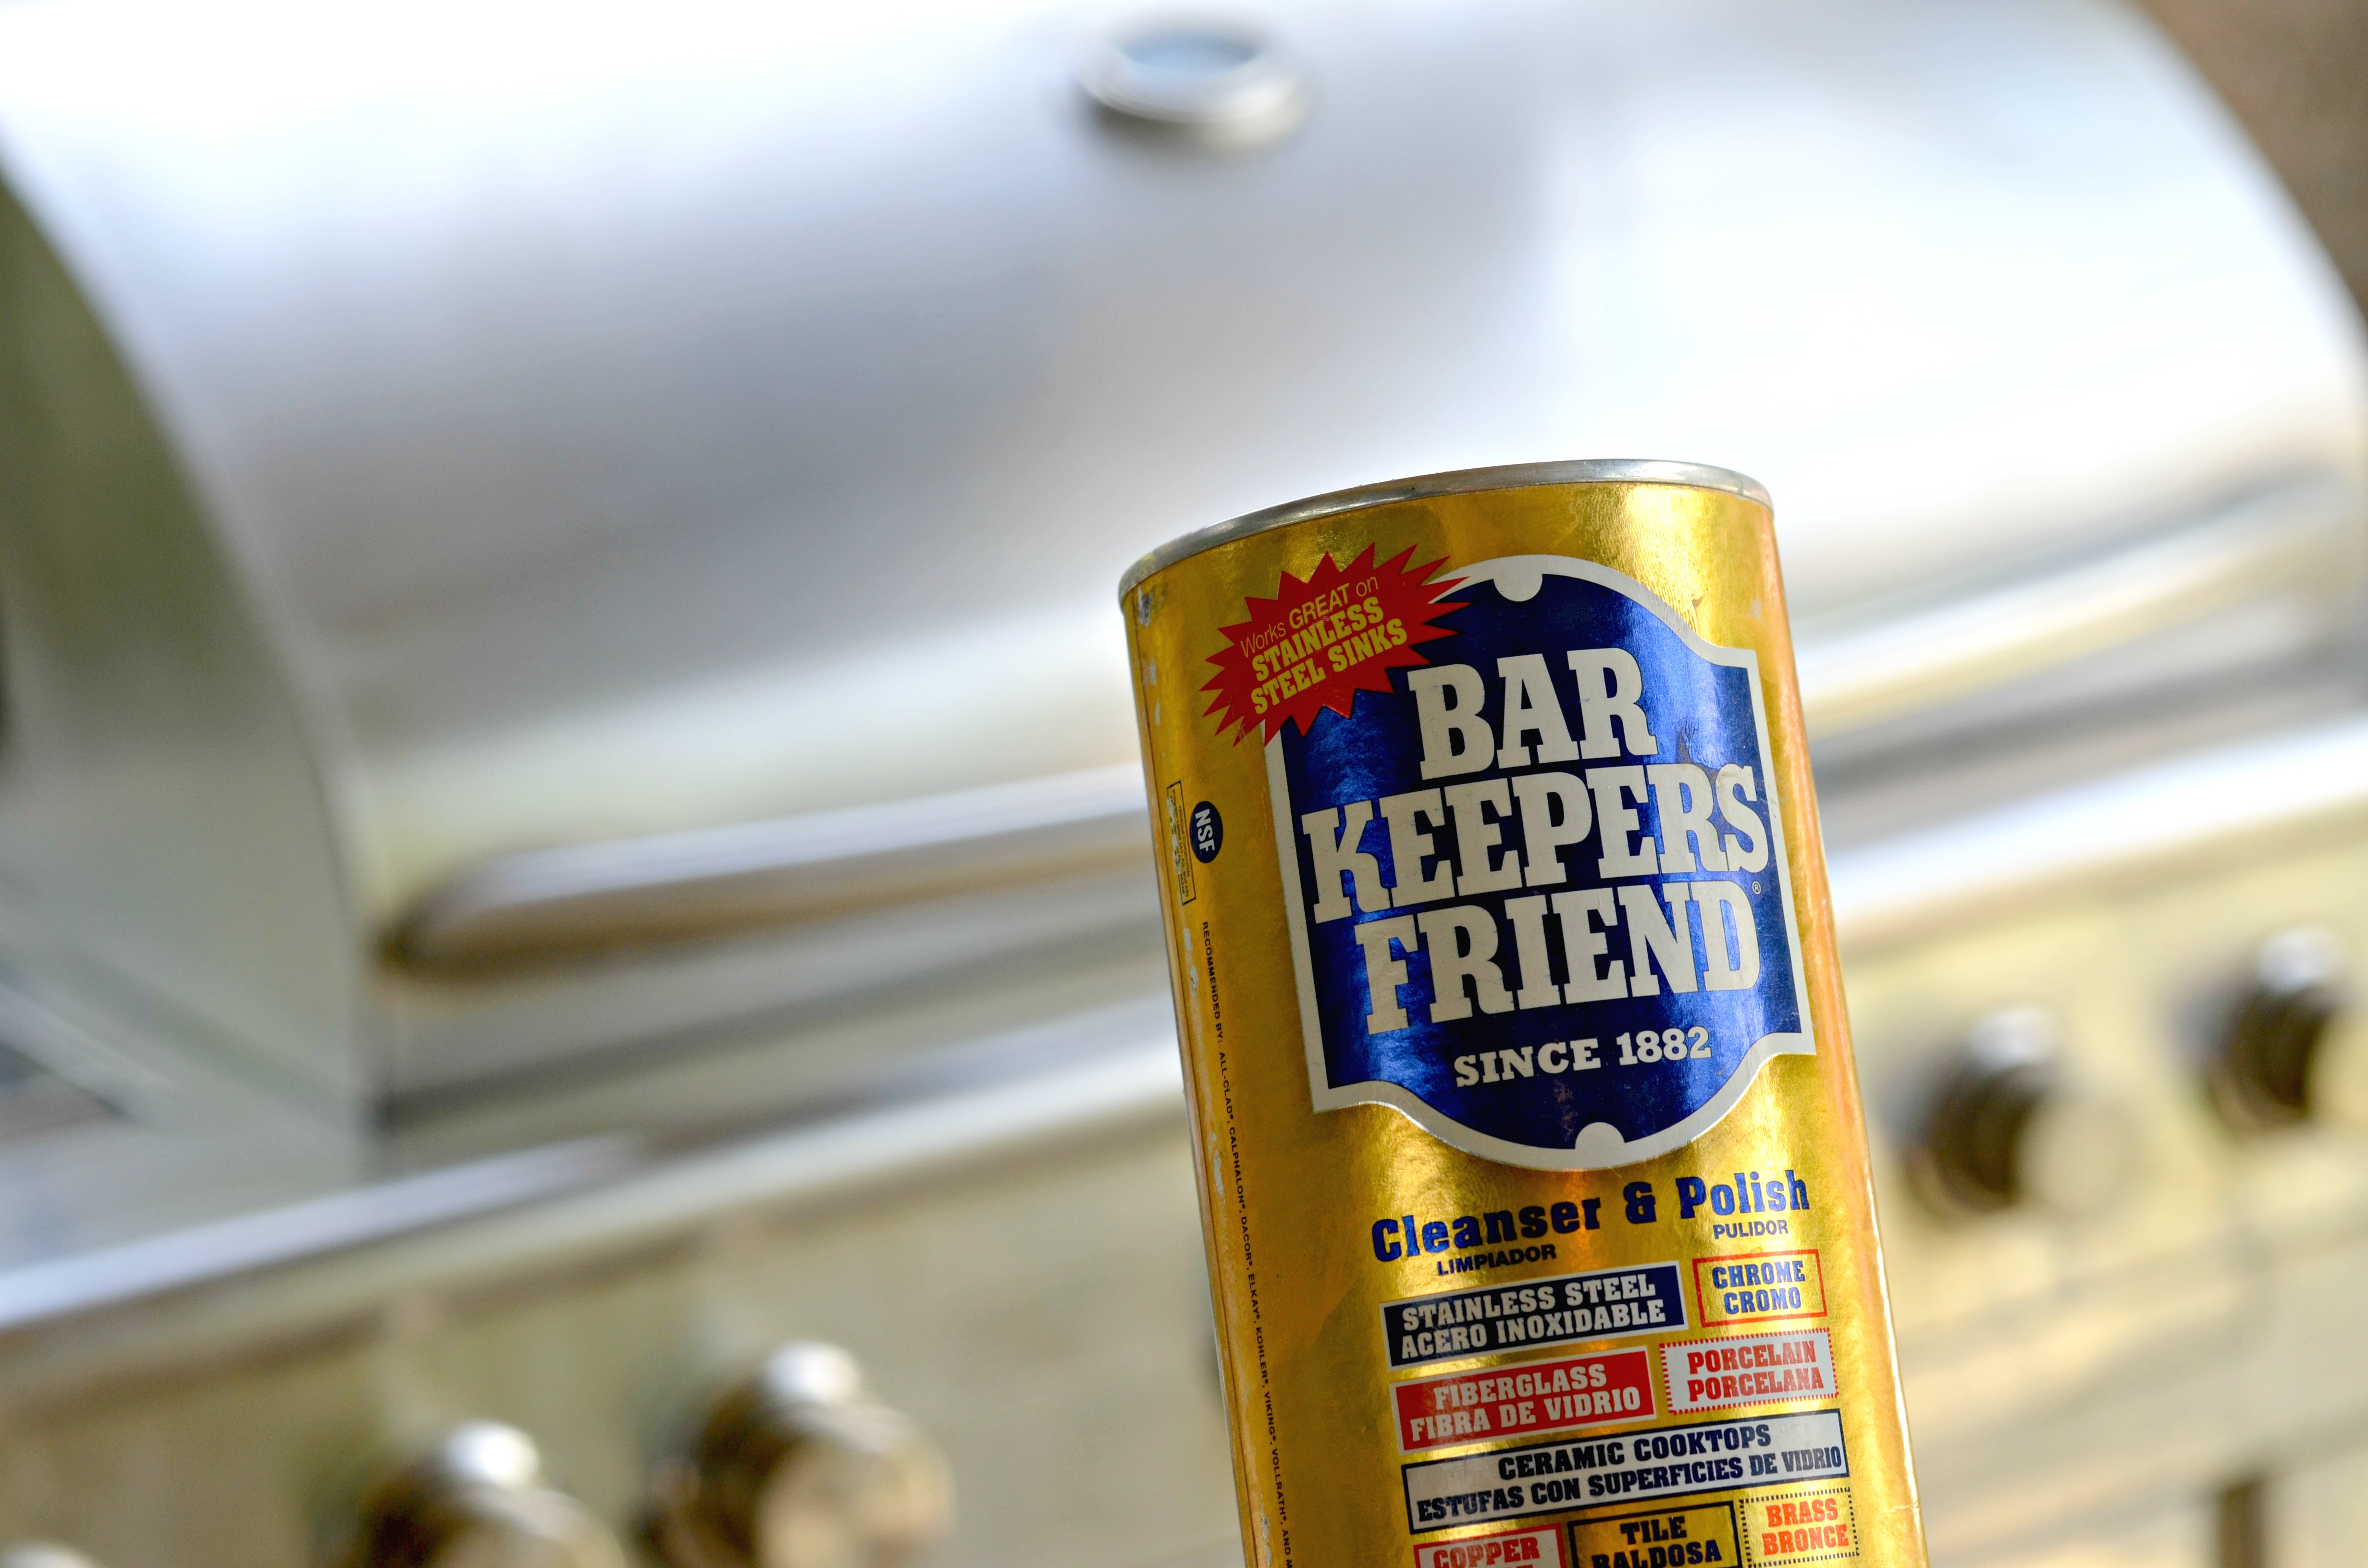 Bar Keepers Friend in front of a barbecue grill